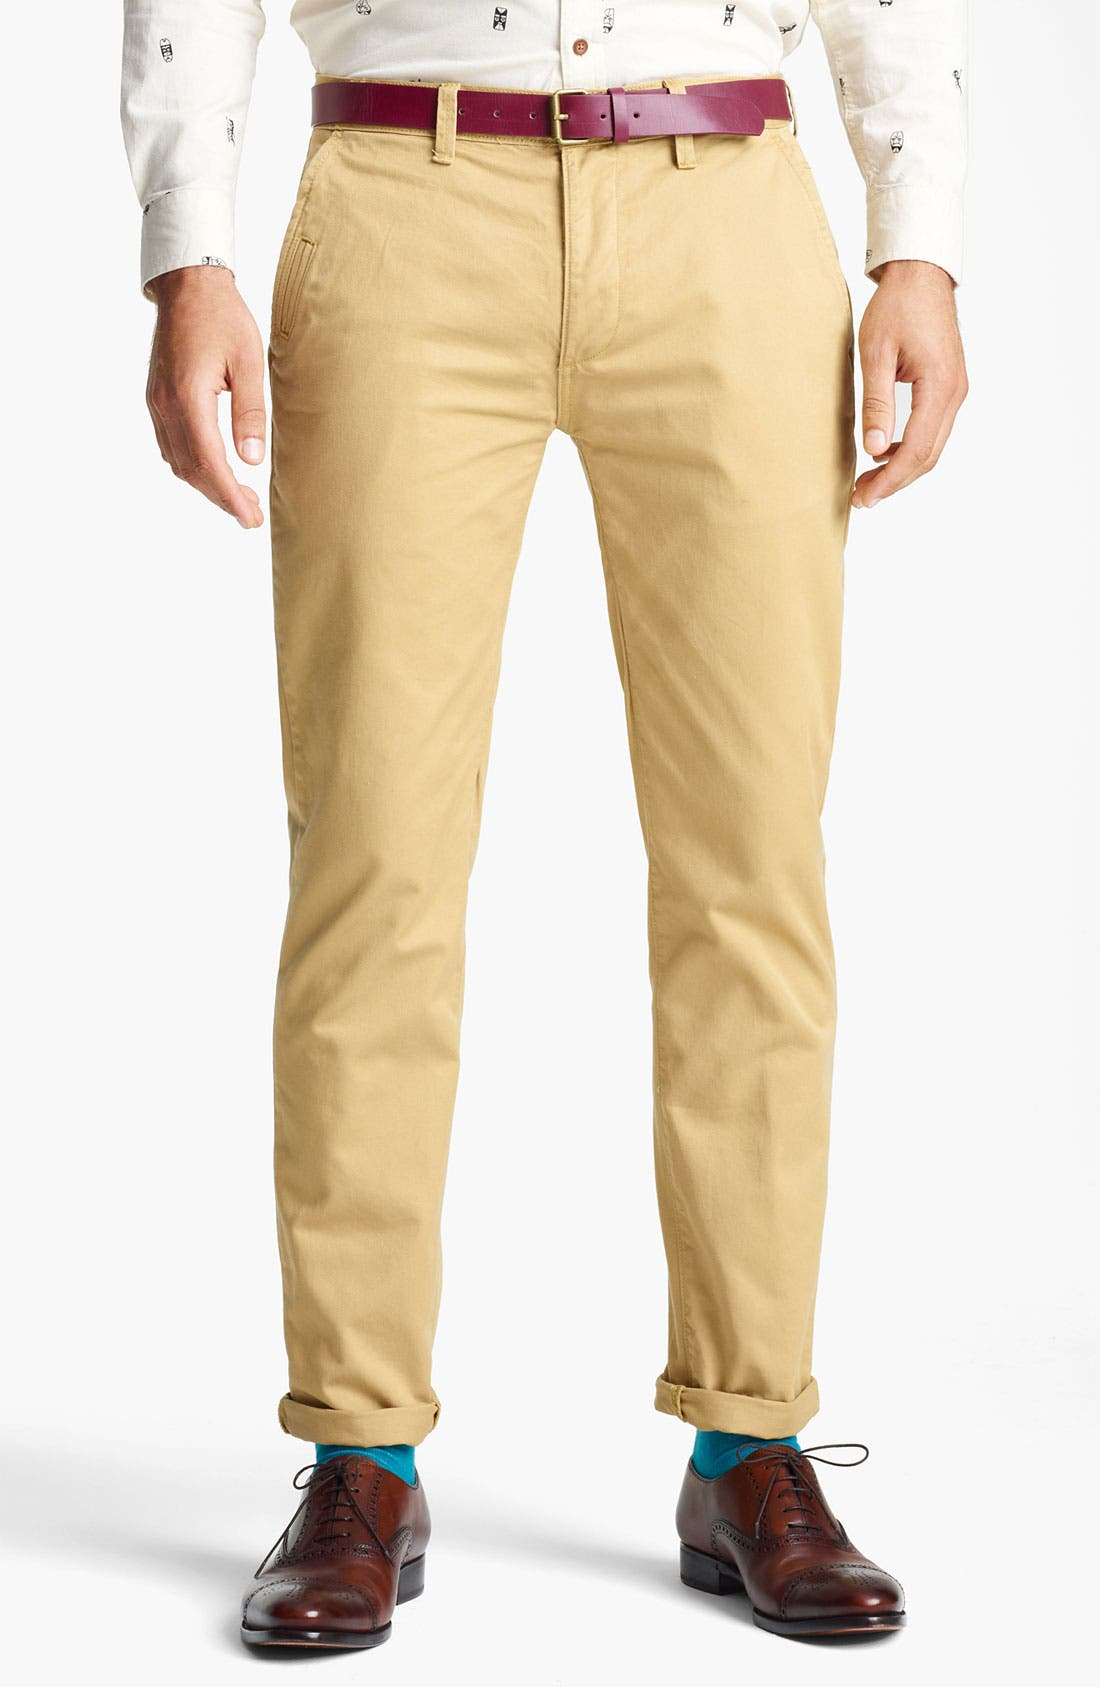 Alternate Image 1 Selected - Topman 'Davies' Skinny Chinos